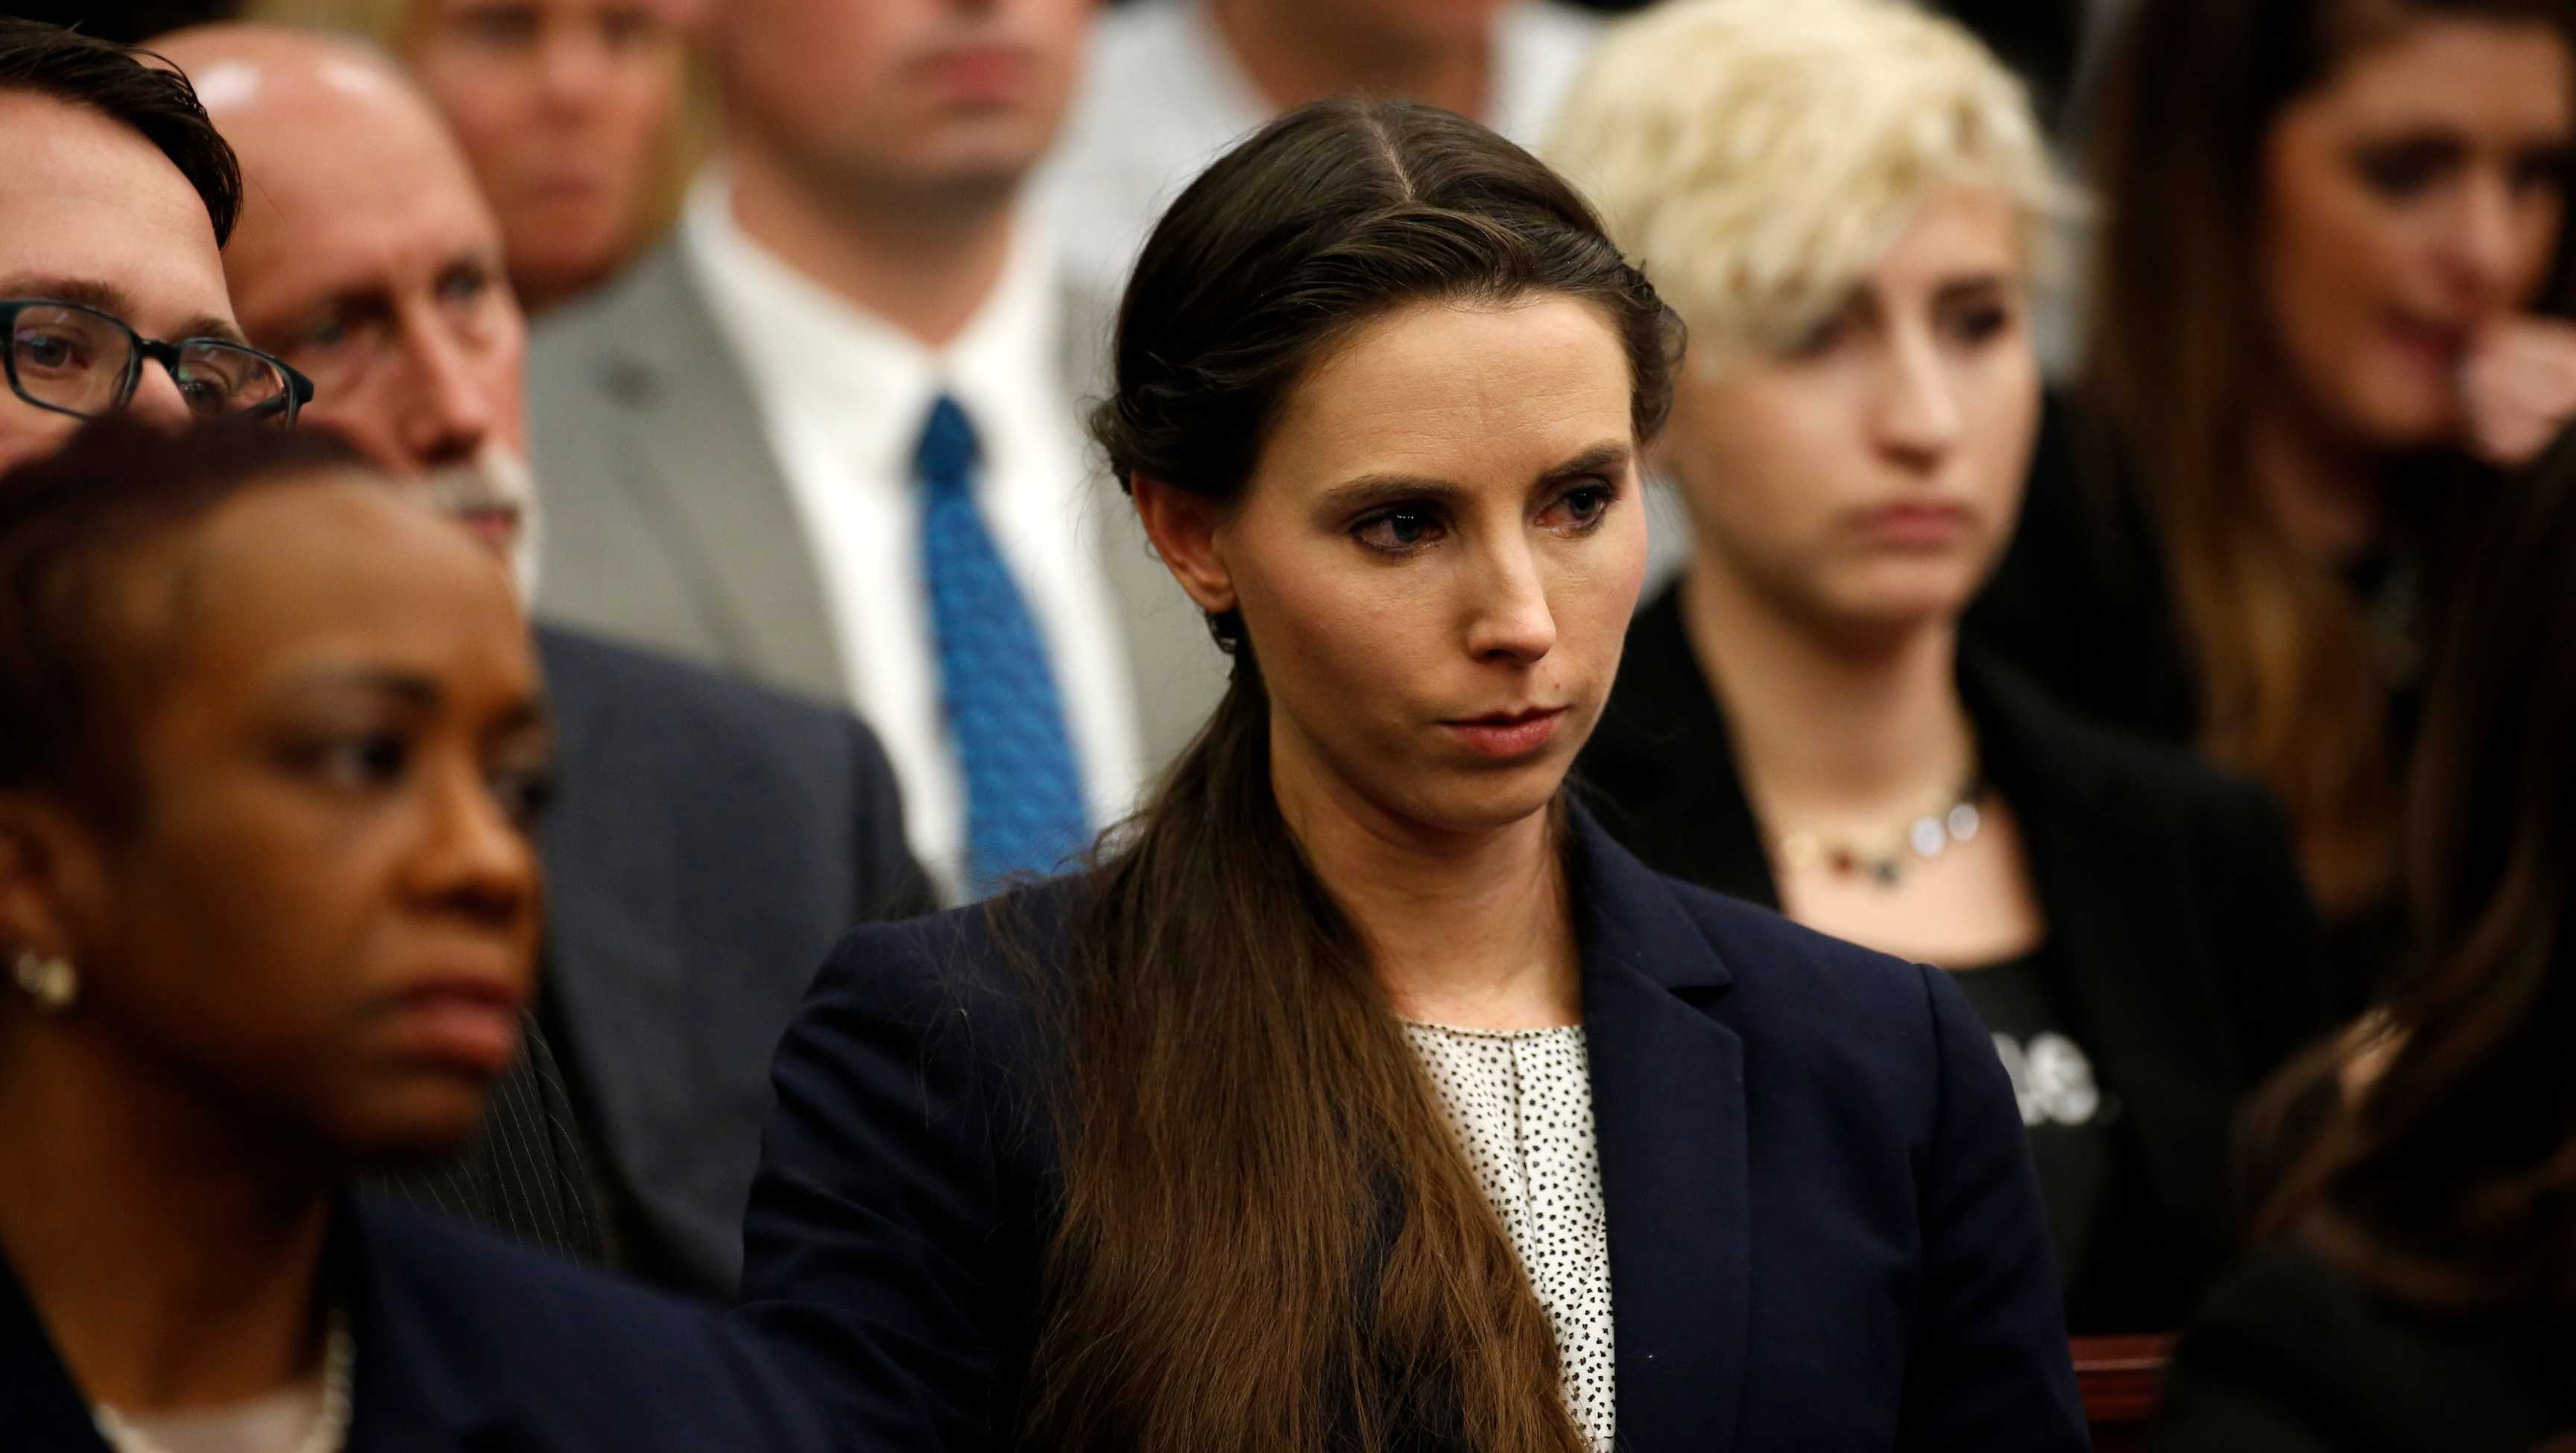 Rachael Denhollander listens during Larry Nassar's sentencing phase in Ingham County Circuit Court on January 24, 2018 in Lansing, Michigan.